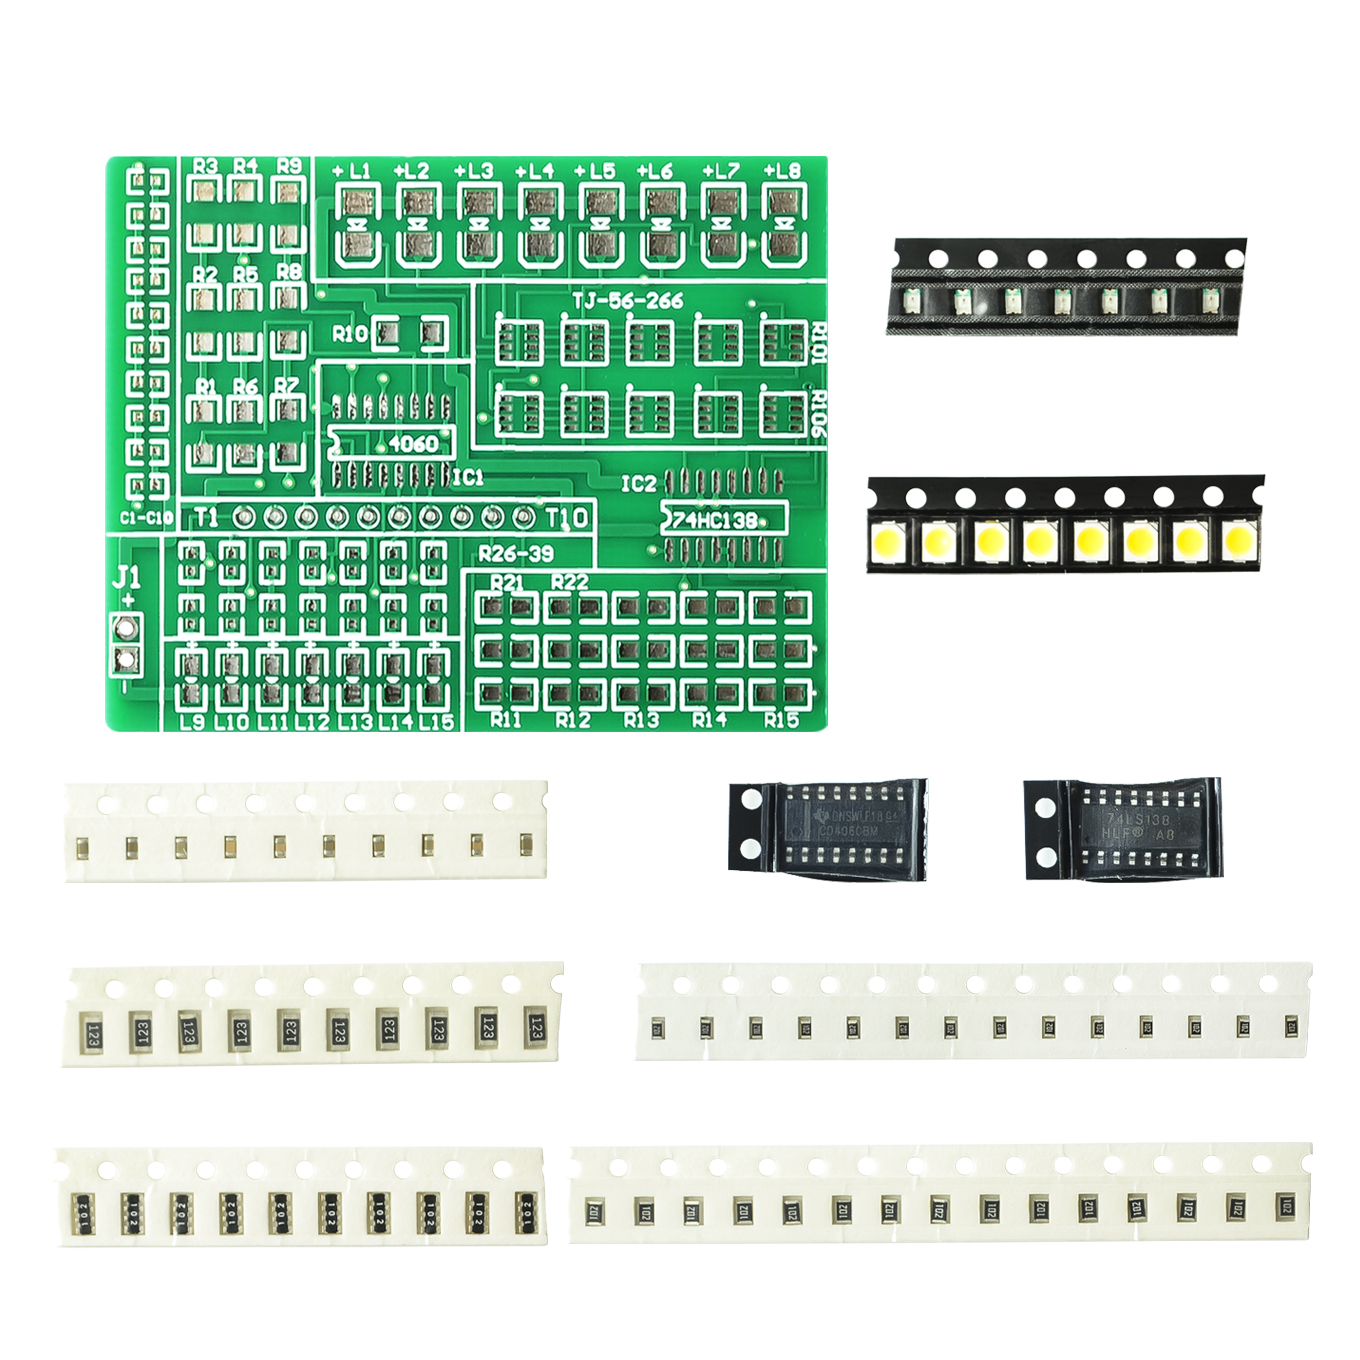 Diy kit 15 color light controller kit 1801 SMD component welding practice board parts electronic production kit